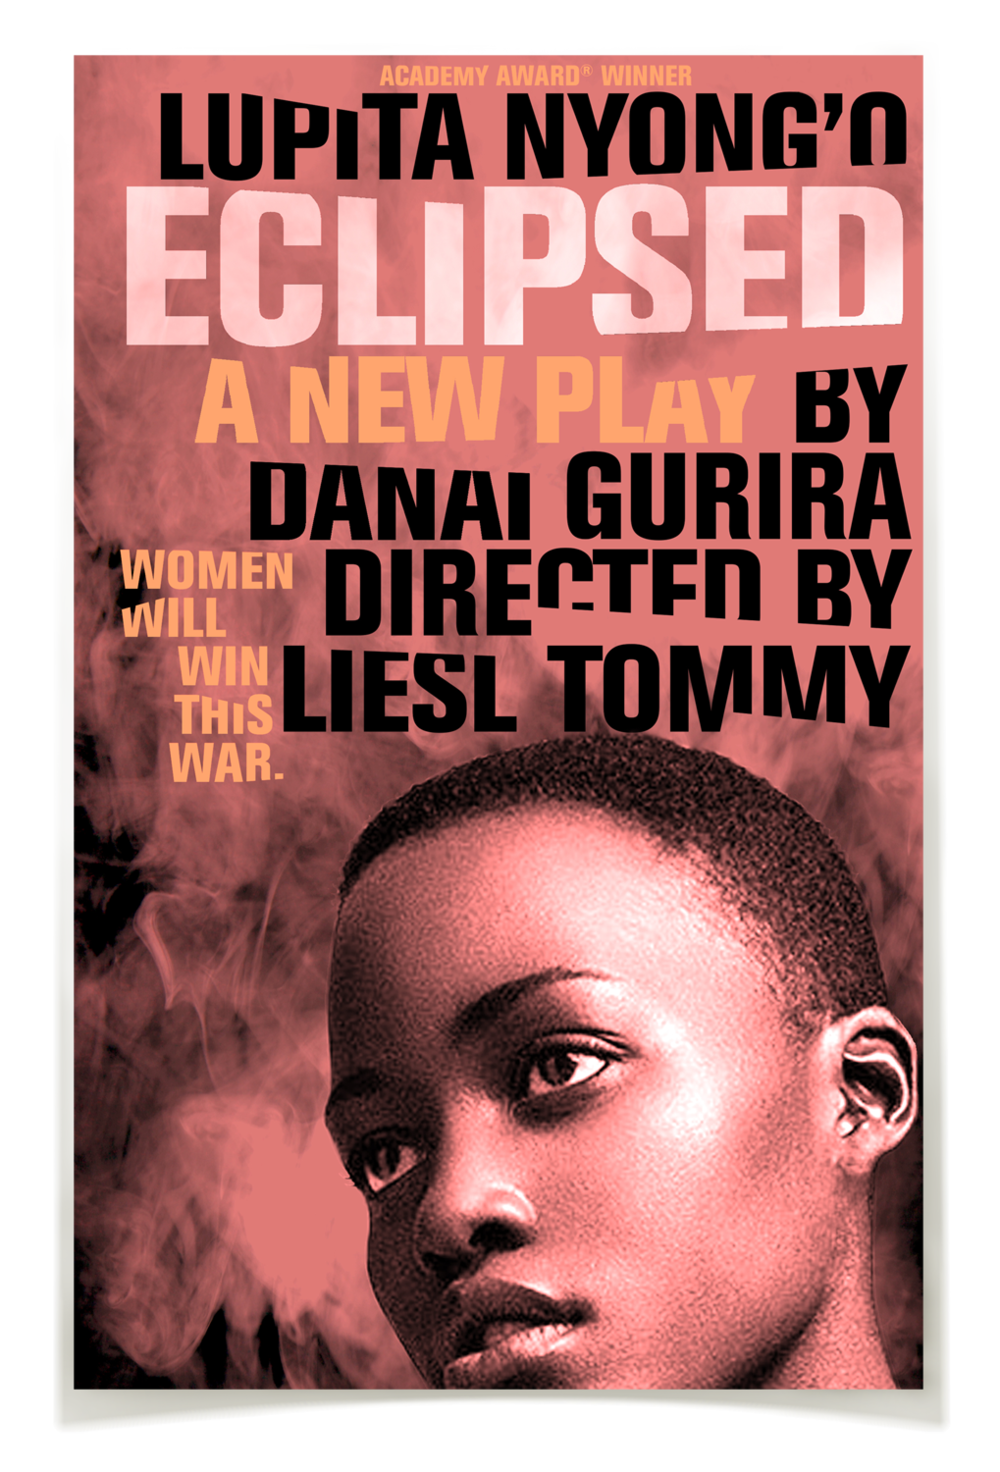 covell_design_eclipsed_lupita_nyong'o_3.png